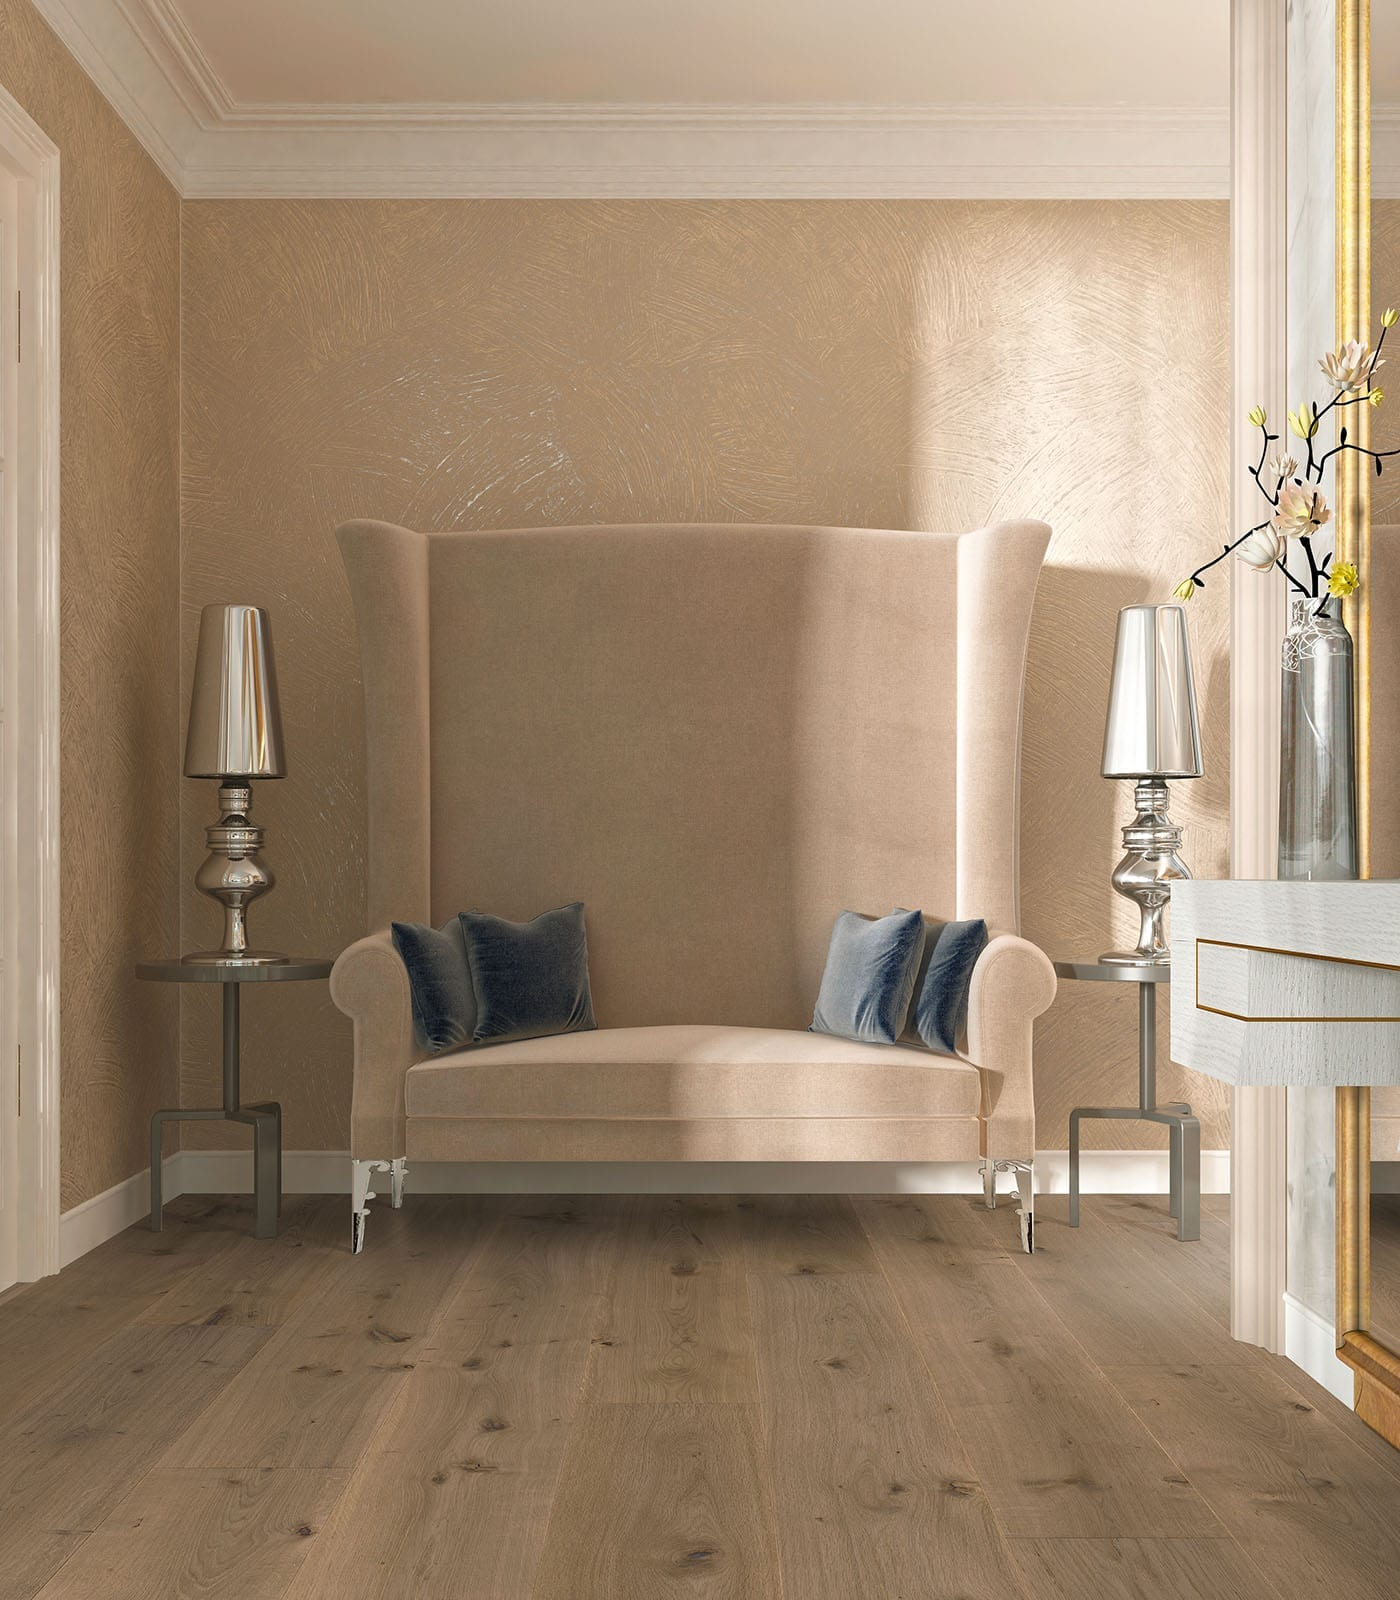 Cairns-European Oak Floors-Lifestyle collection-room